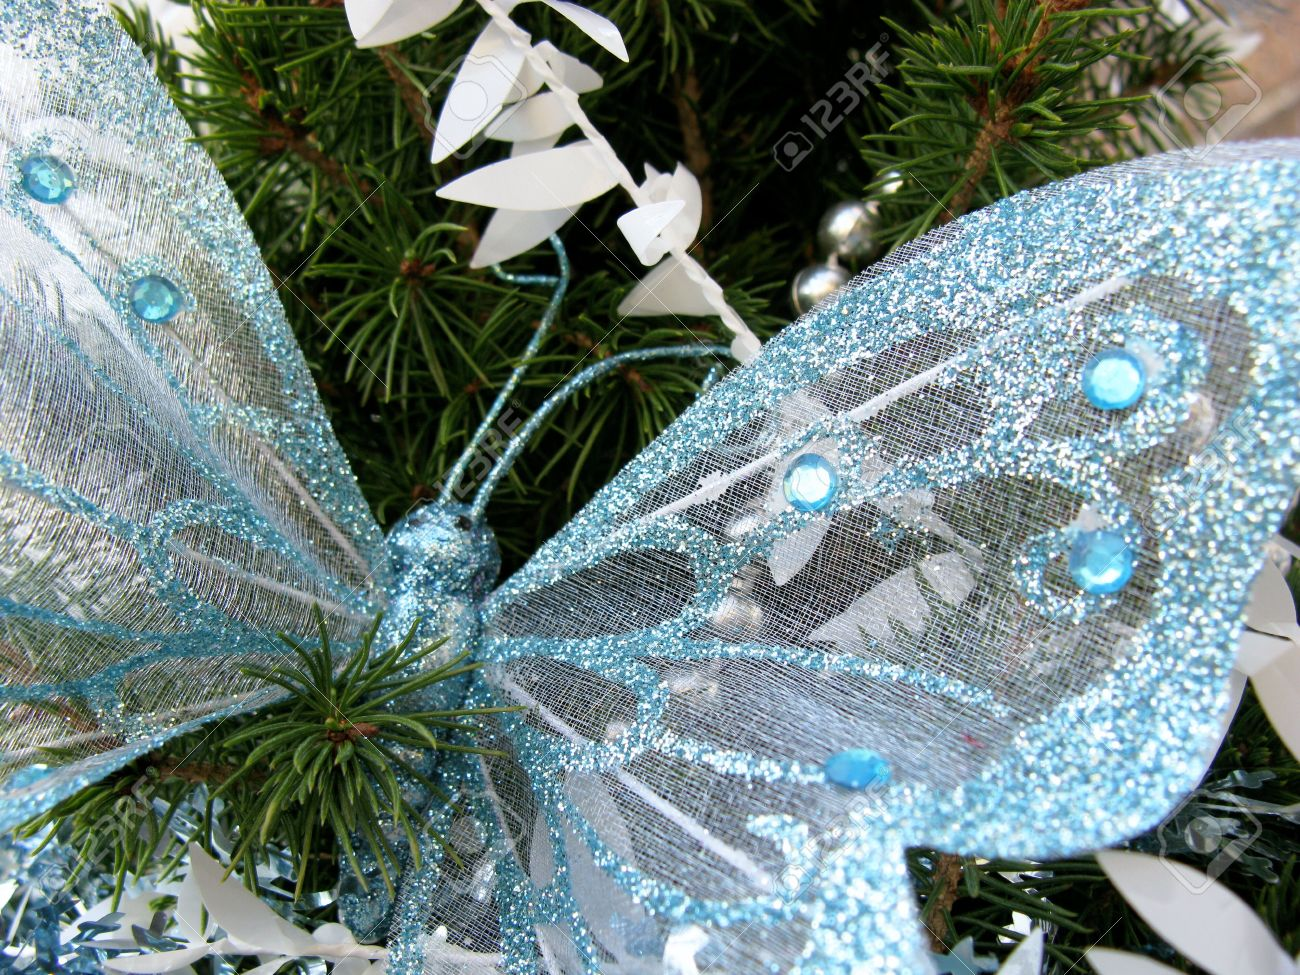 A Butterfly In A Christmas Tree Stock Photo, Picture And Royalty ...